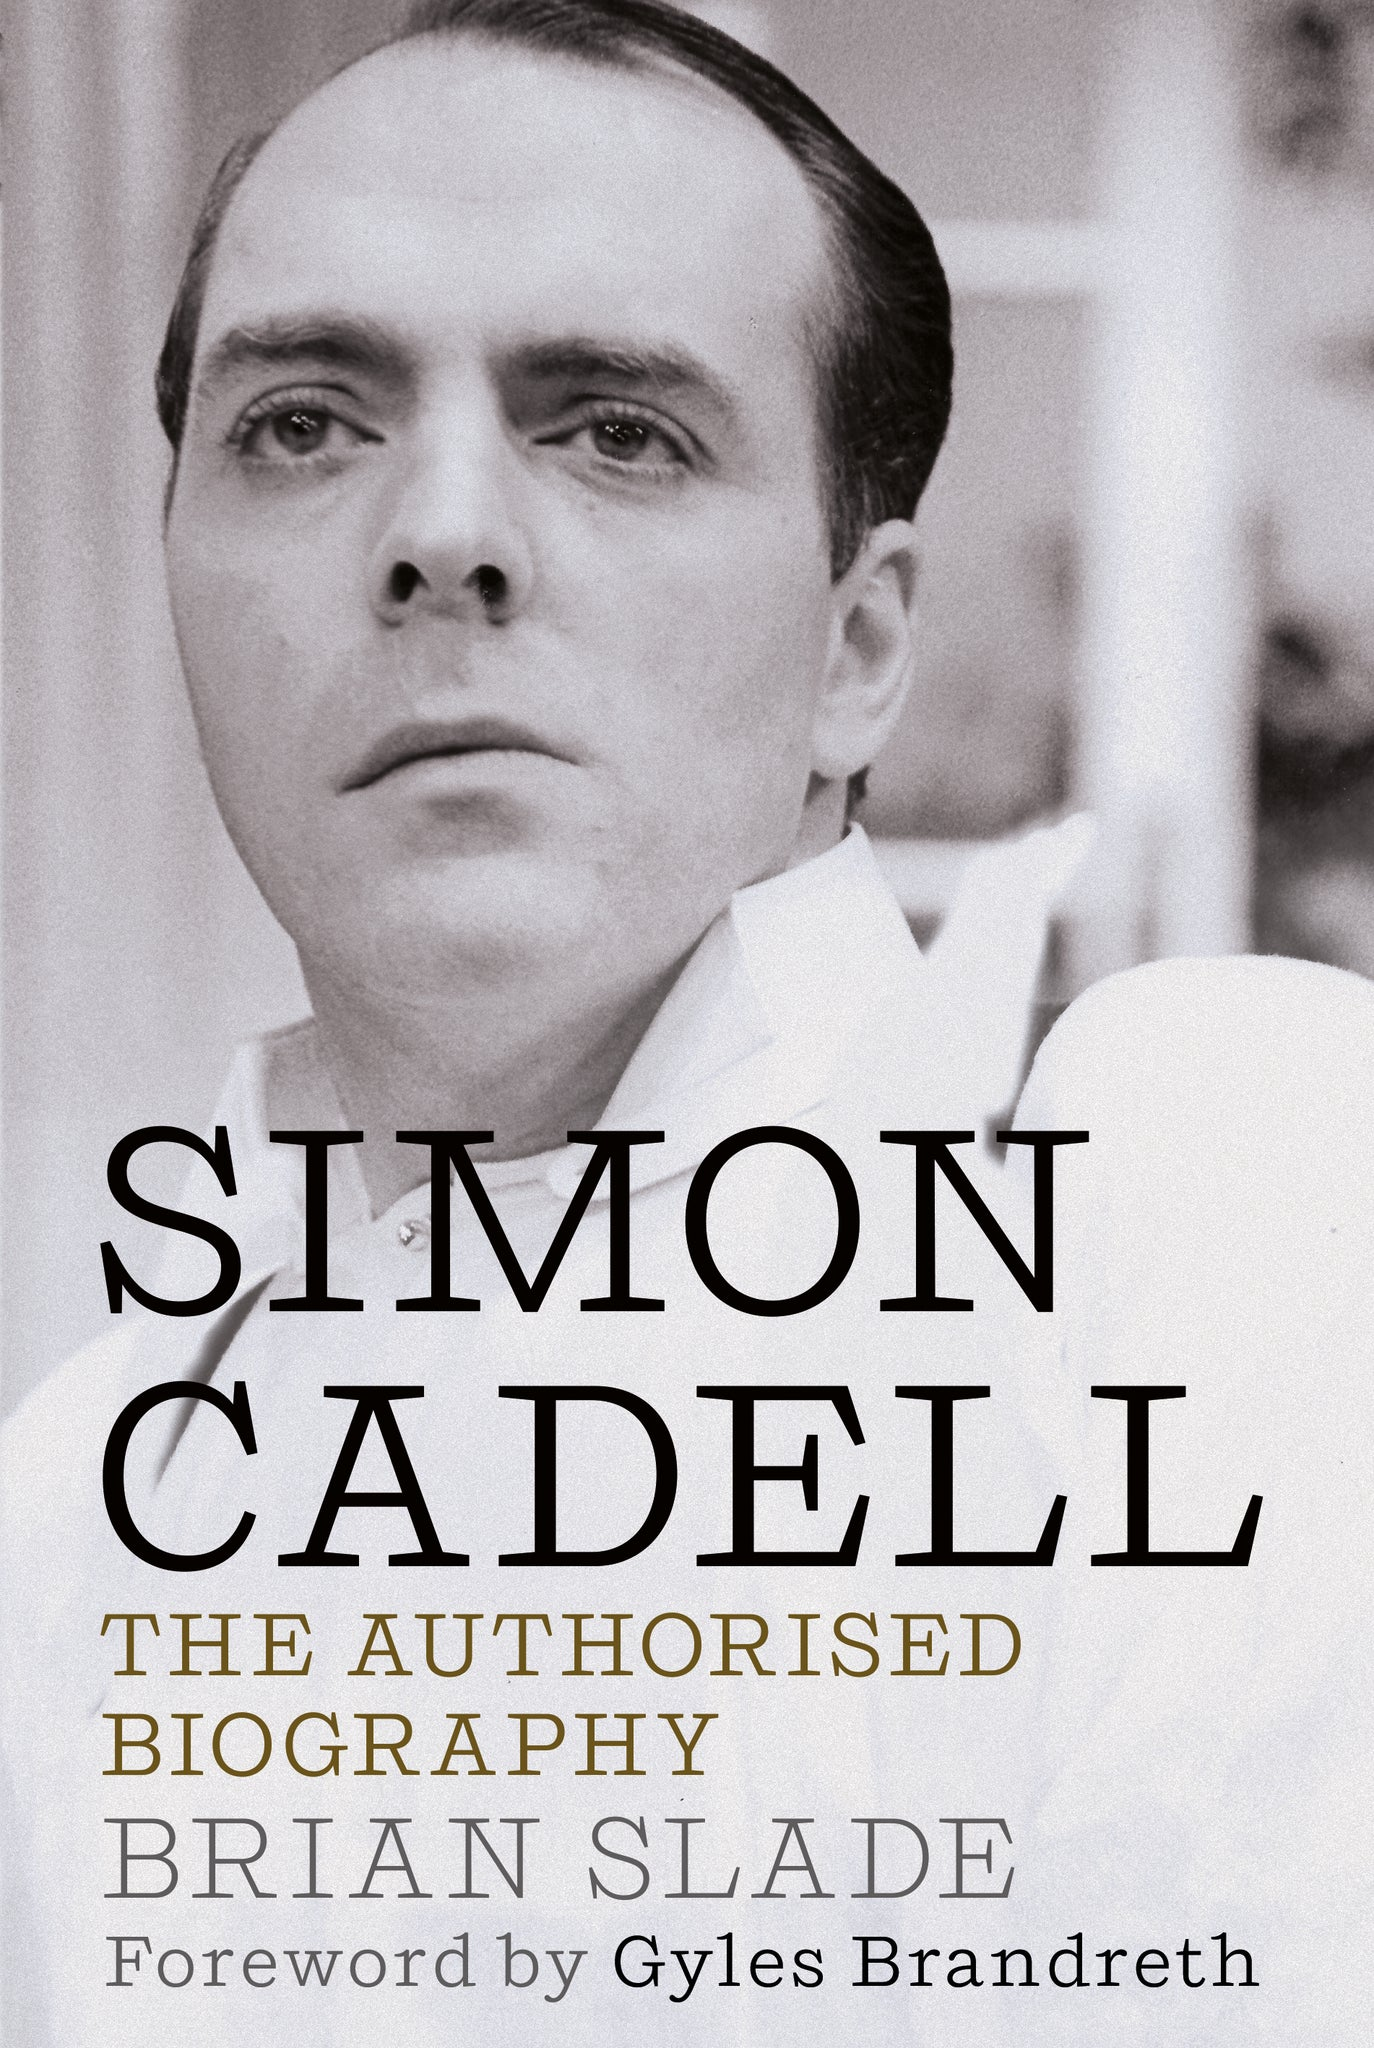 Simon Cadell: The Authorised Biography - available now from Fonthill Media